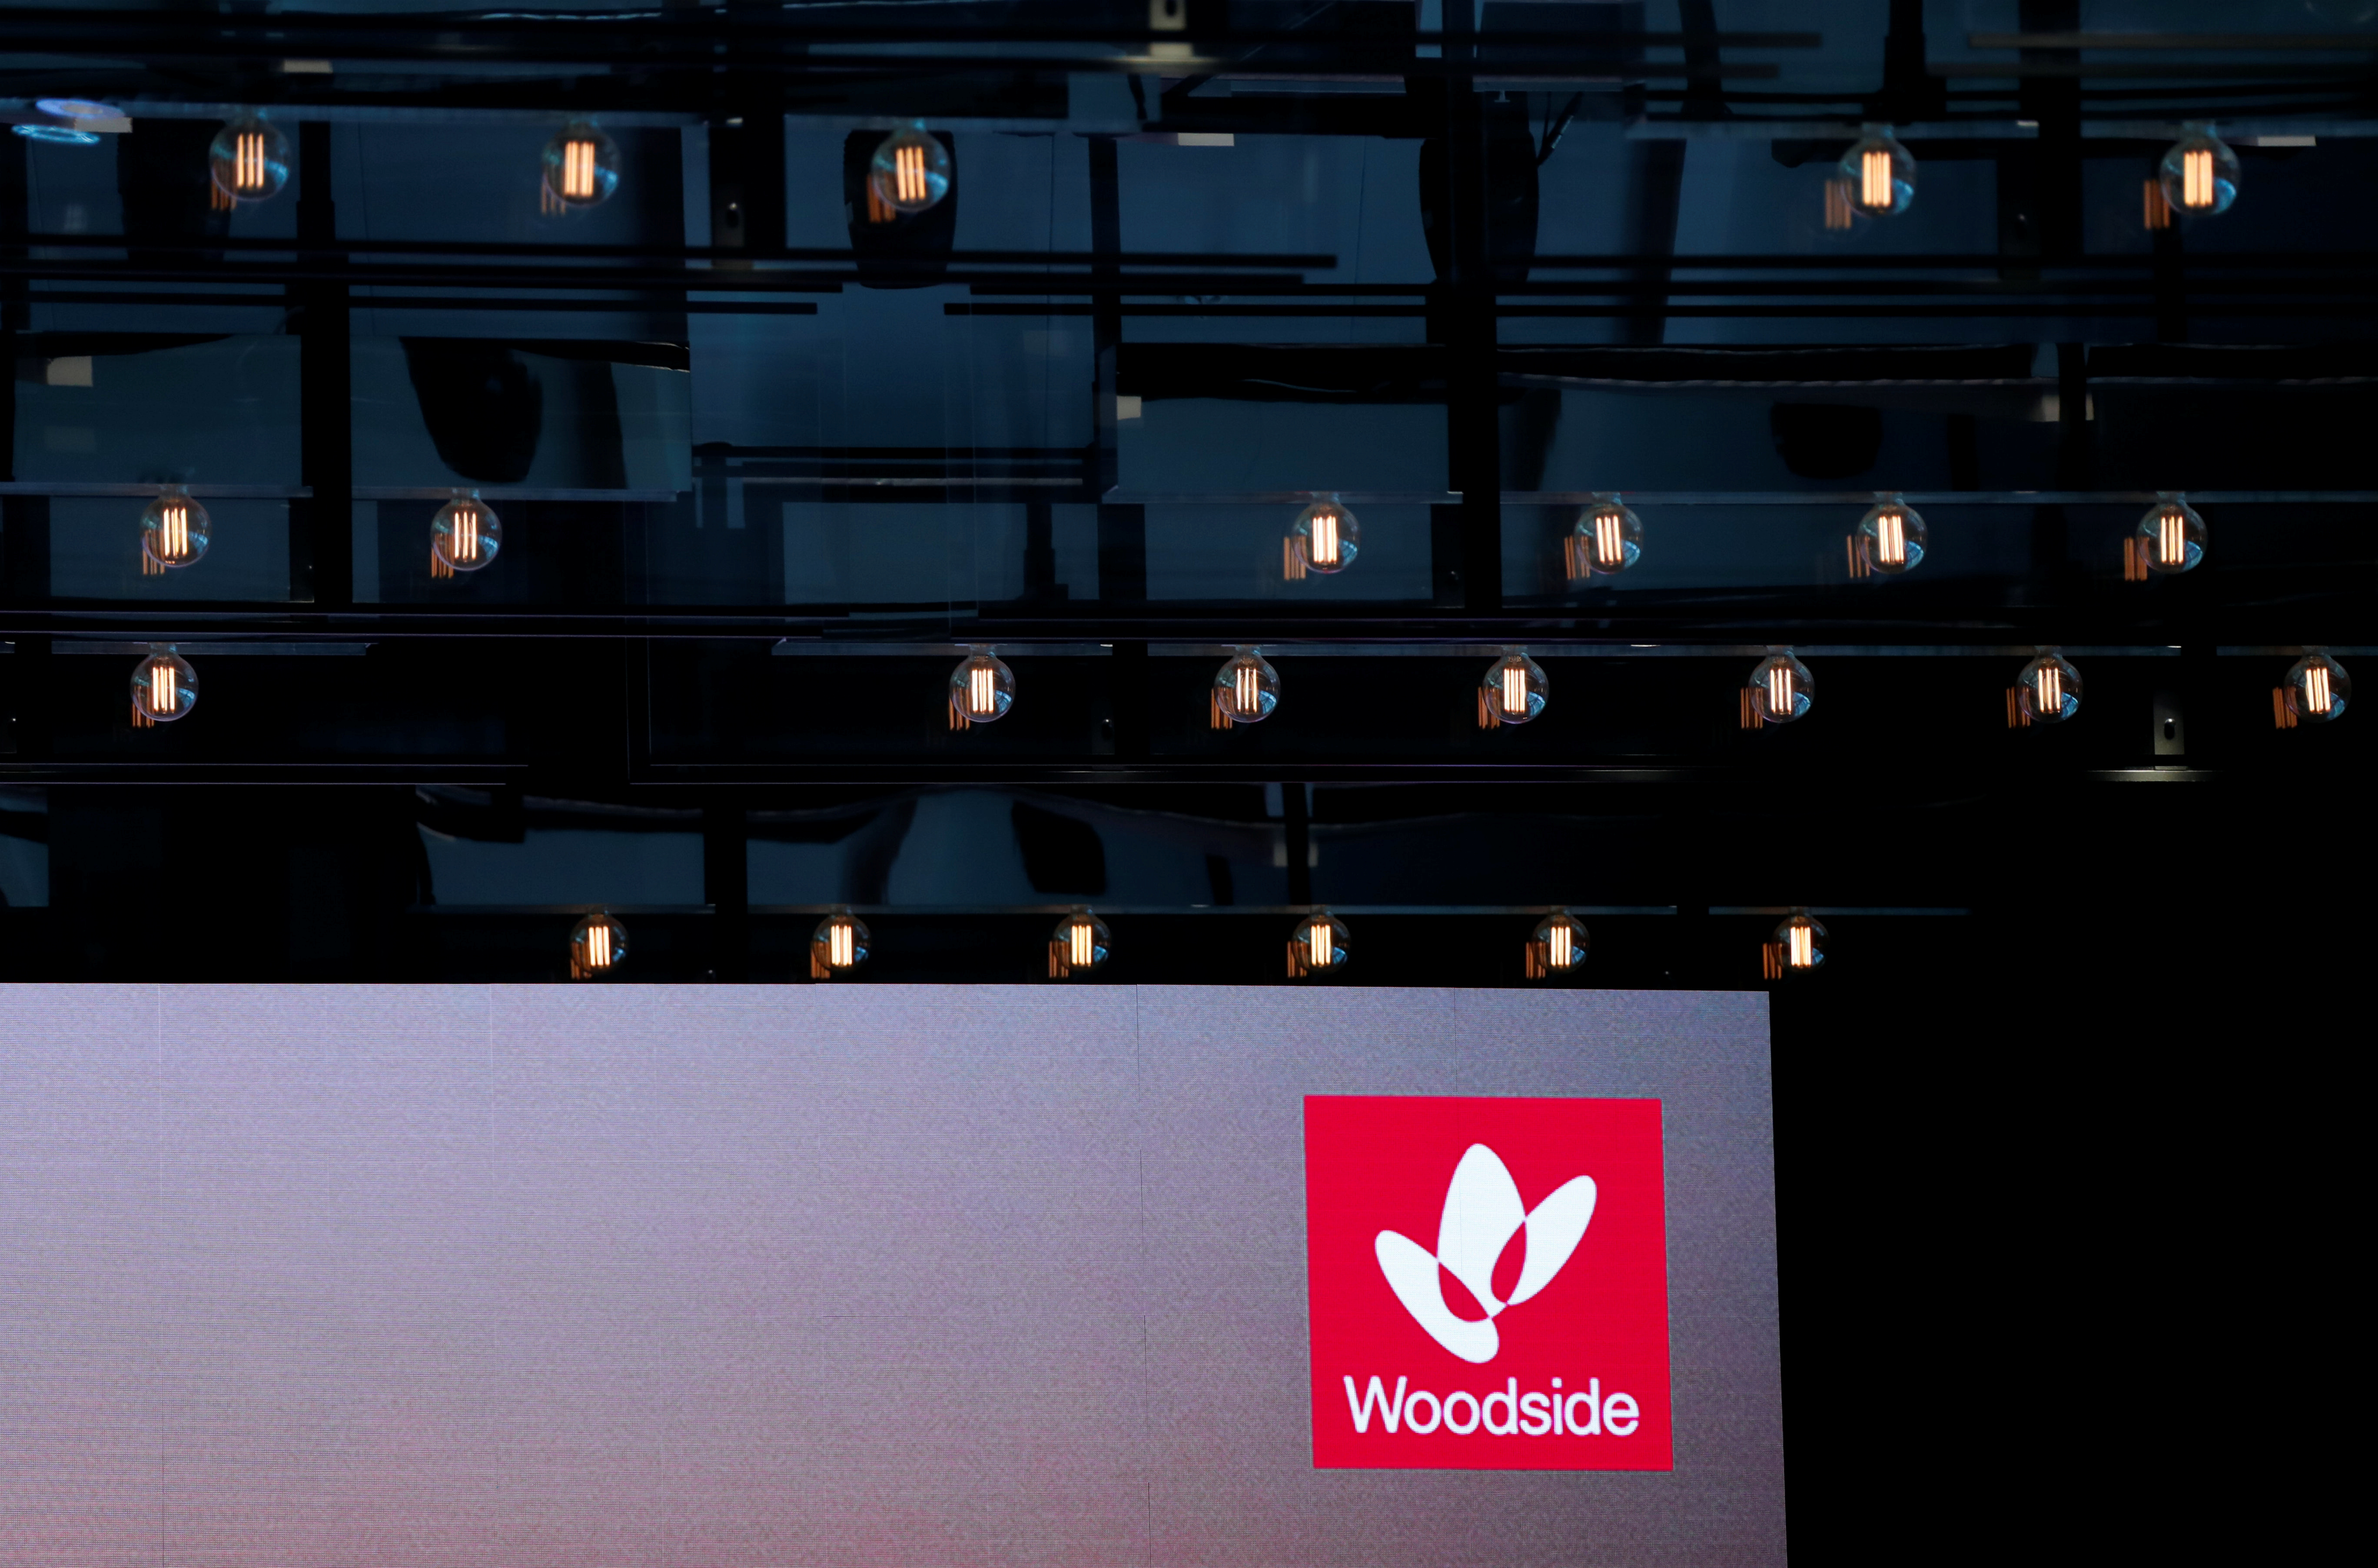 The logo for Woodside Petroleum, Australia's top independent oil and gas company, is projected onto a screen at a briefing for investors in Sydney, Australia, May 23, 2018.   REUTERS/David Gray